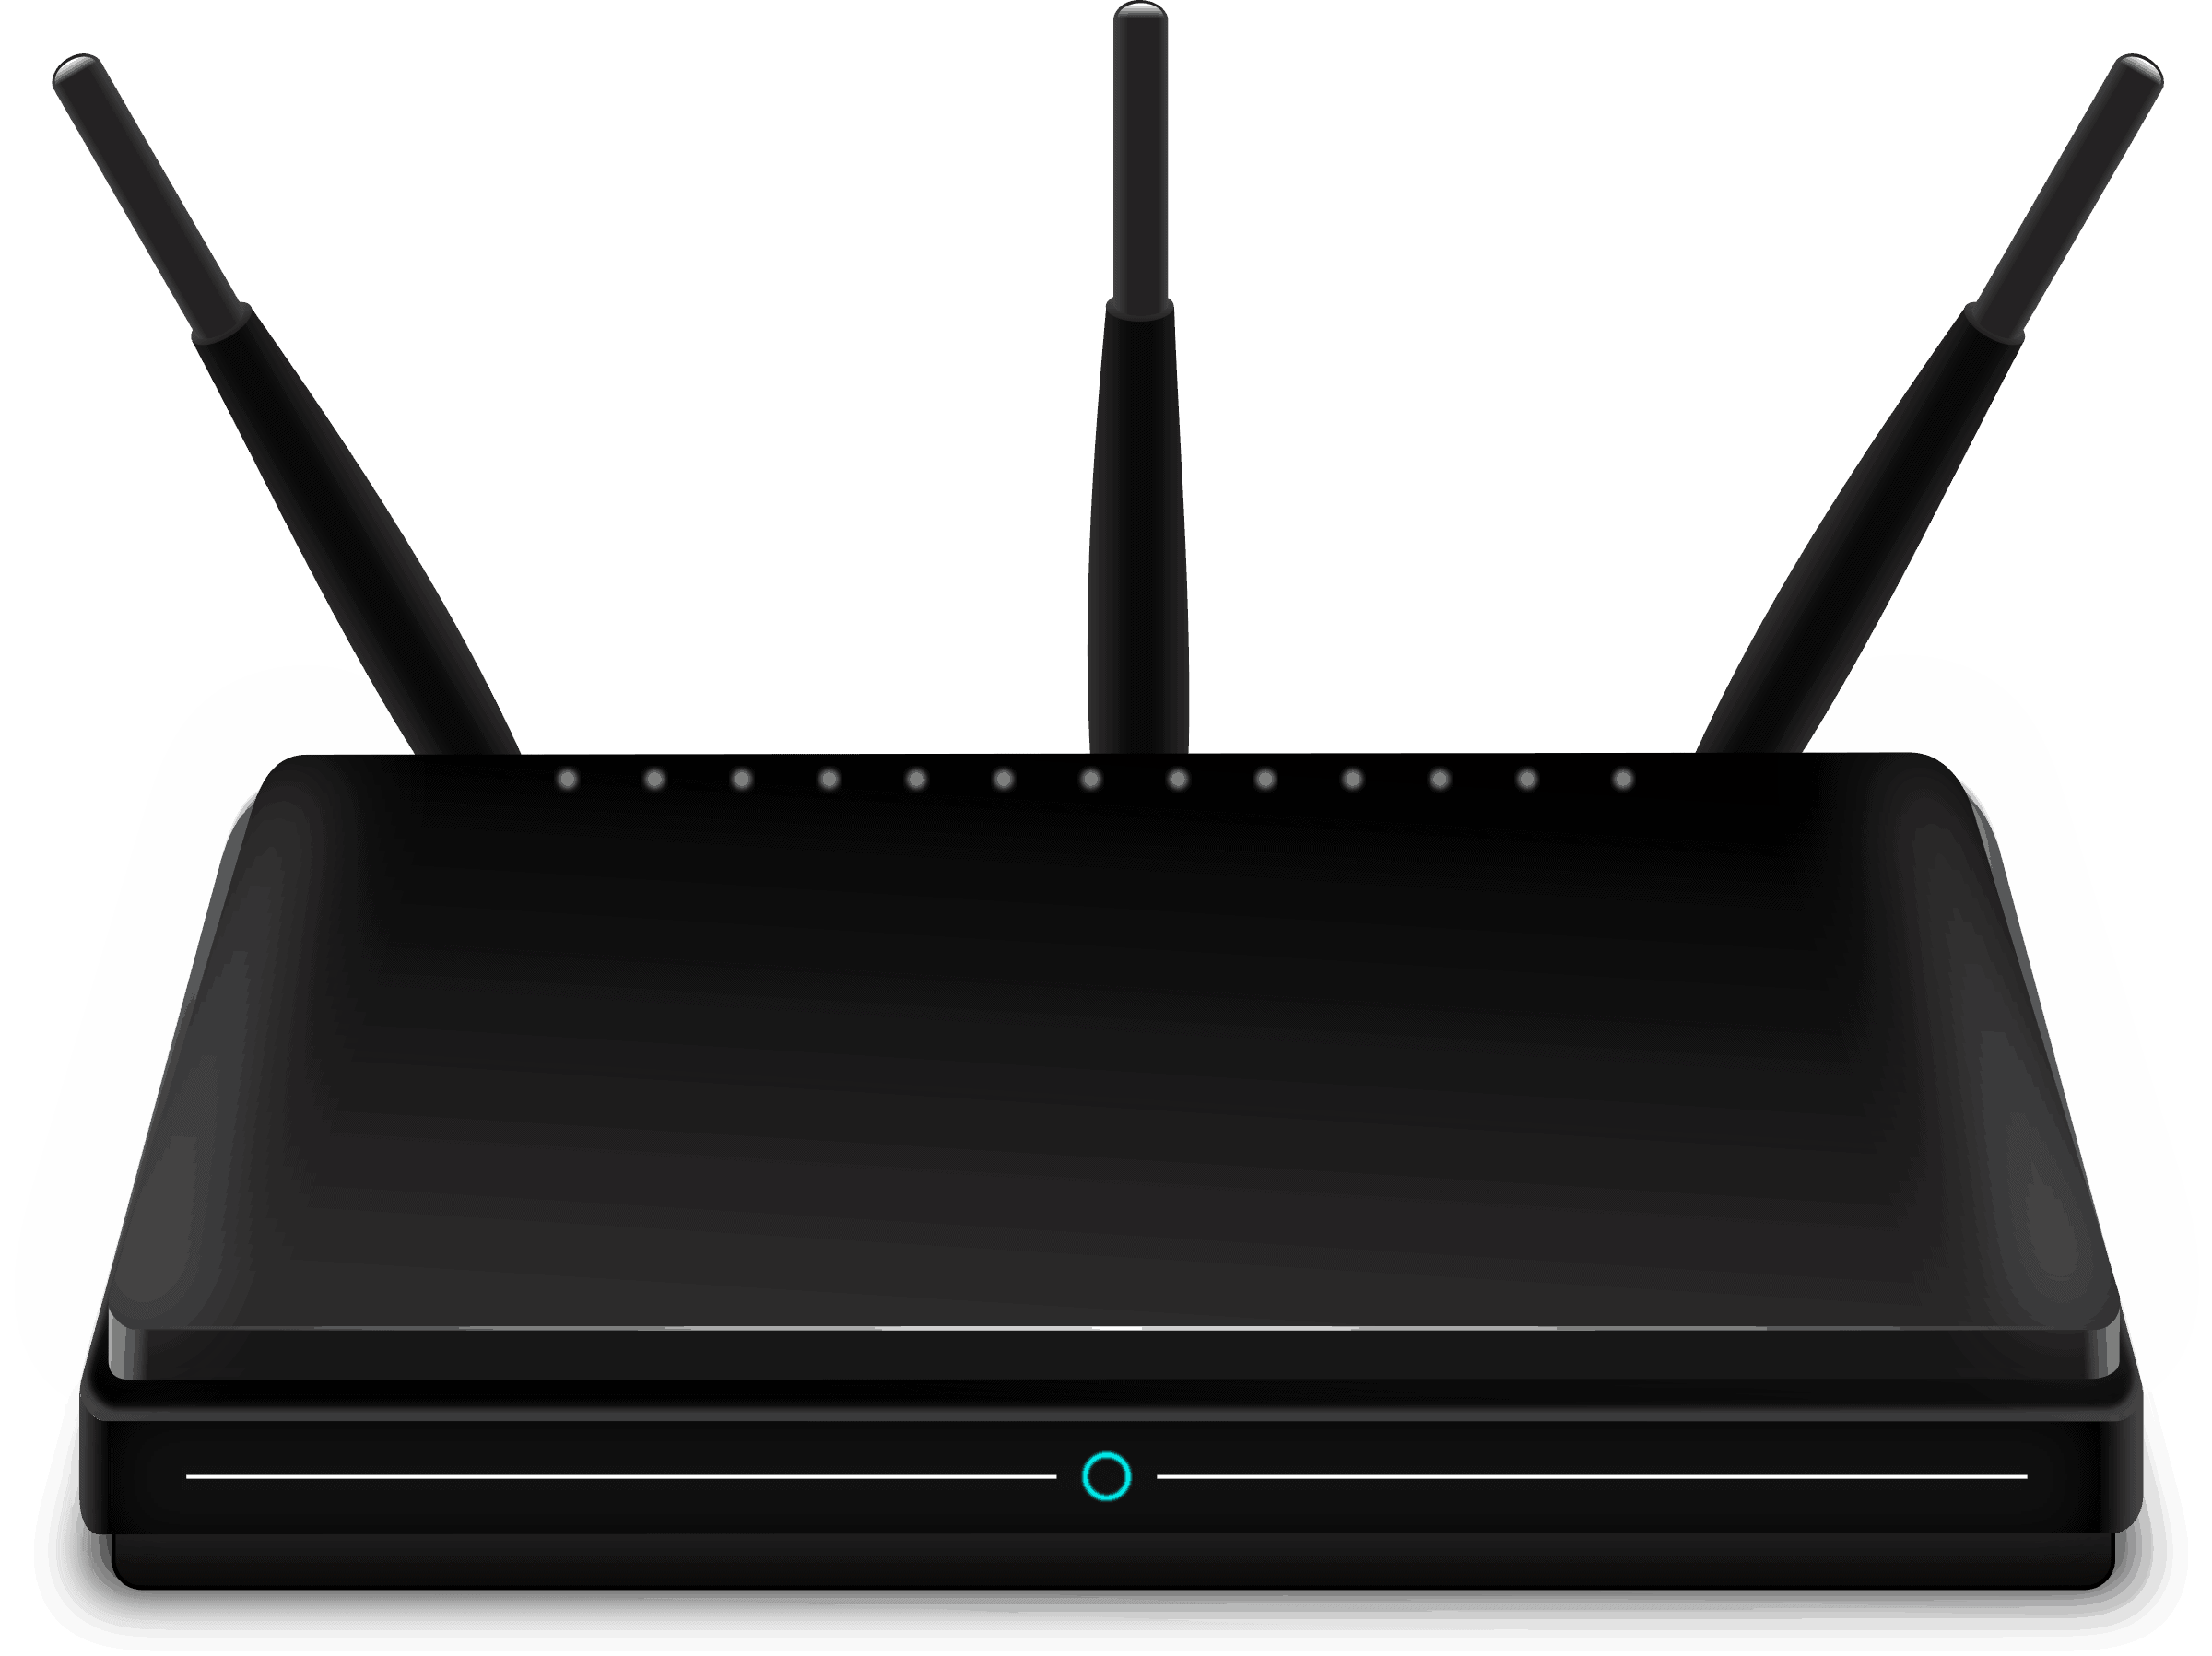 Top 10 Best Wireless Access Points Reviews (UPDATED 2019)